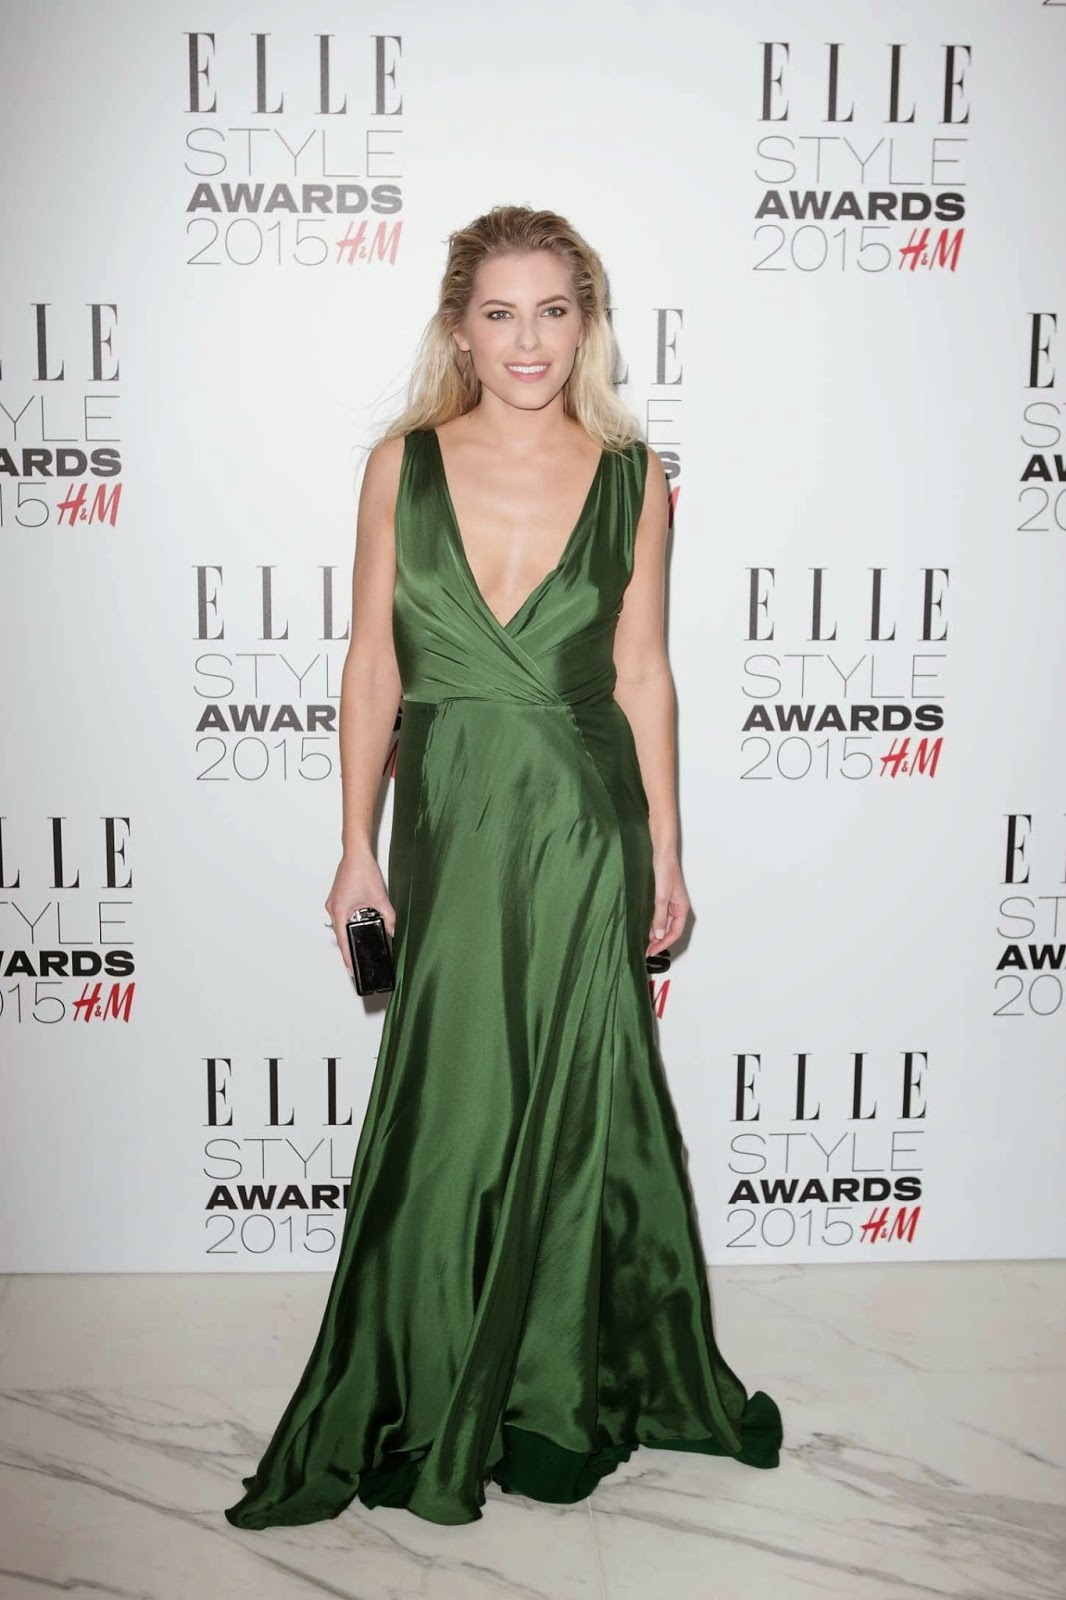 Mollie King in a low-cut Ralph Lauren dress at the 2015 Elle Style Awards in London